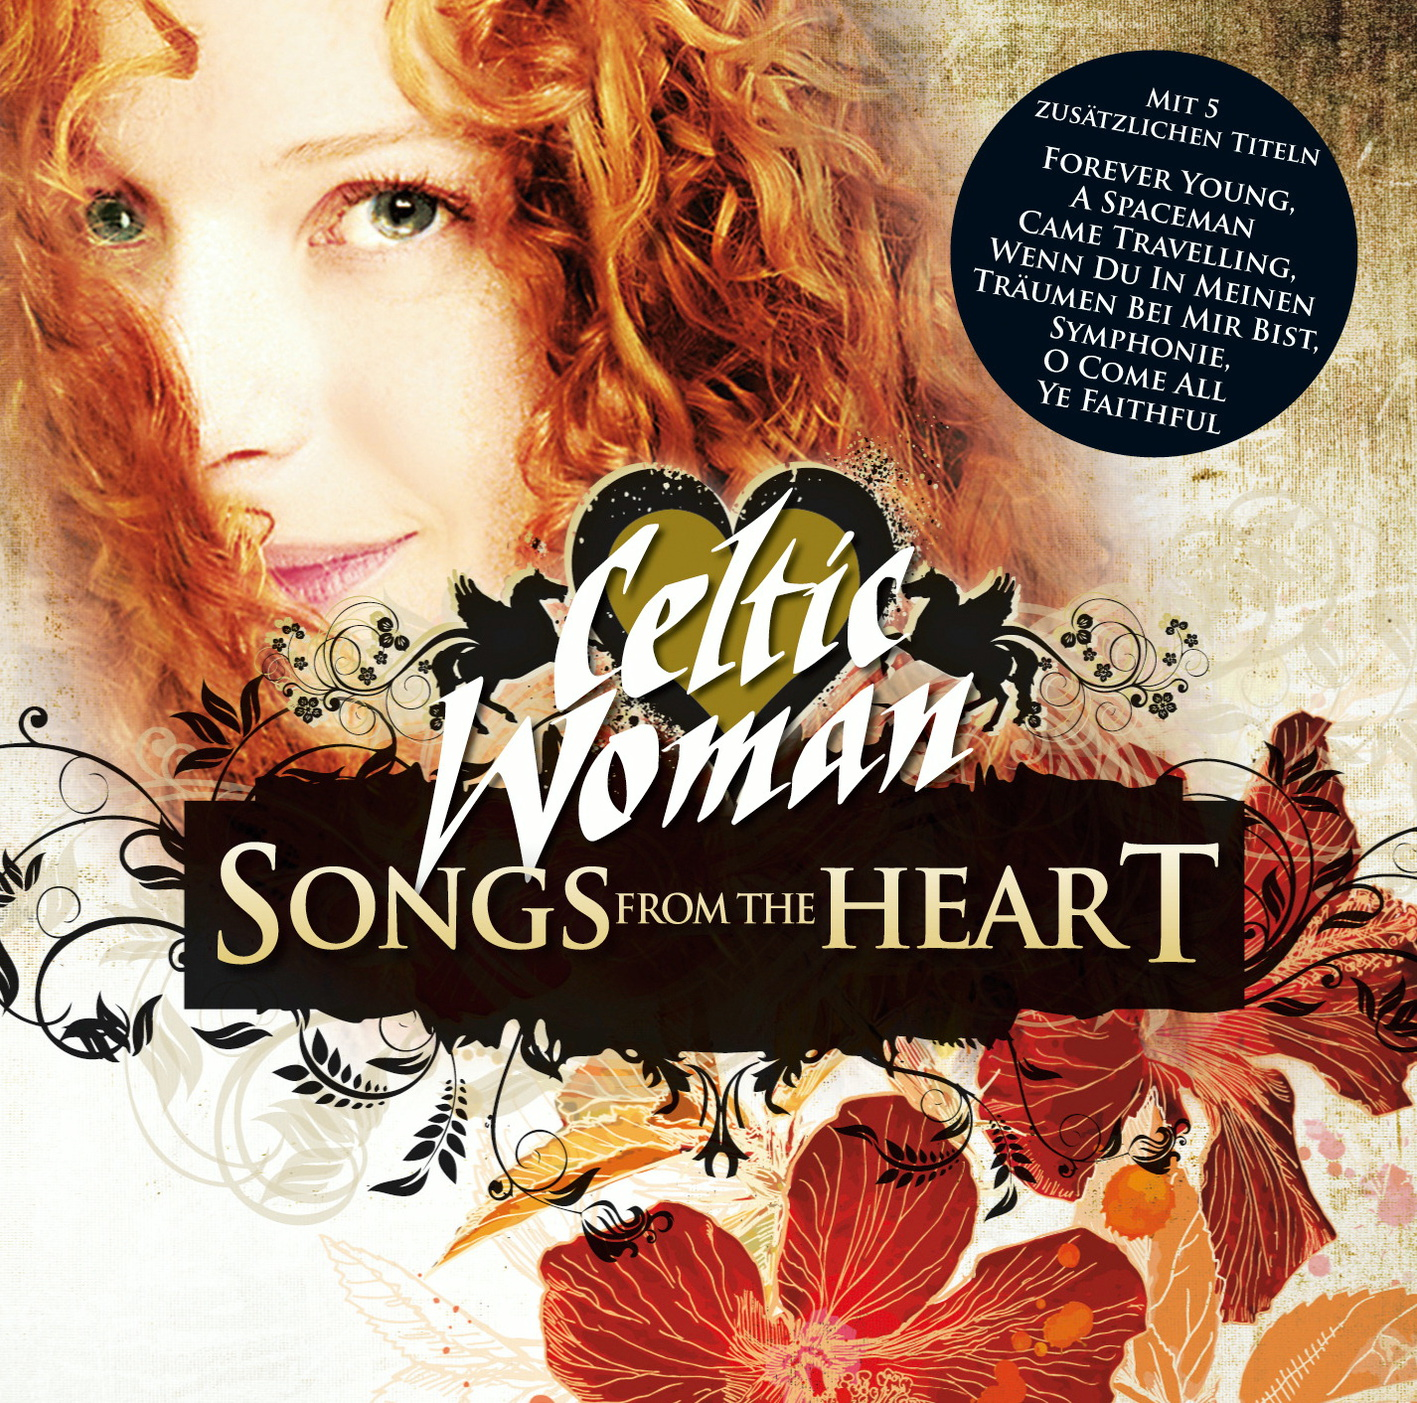 Celtic Woman - Songs from the Heart (inkl. Bonustiteln)